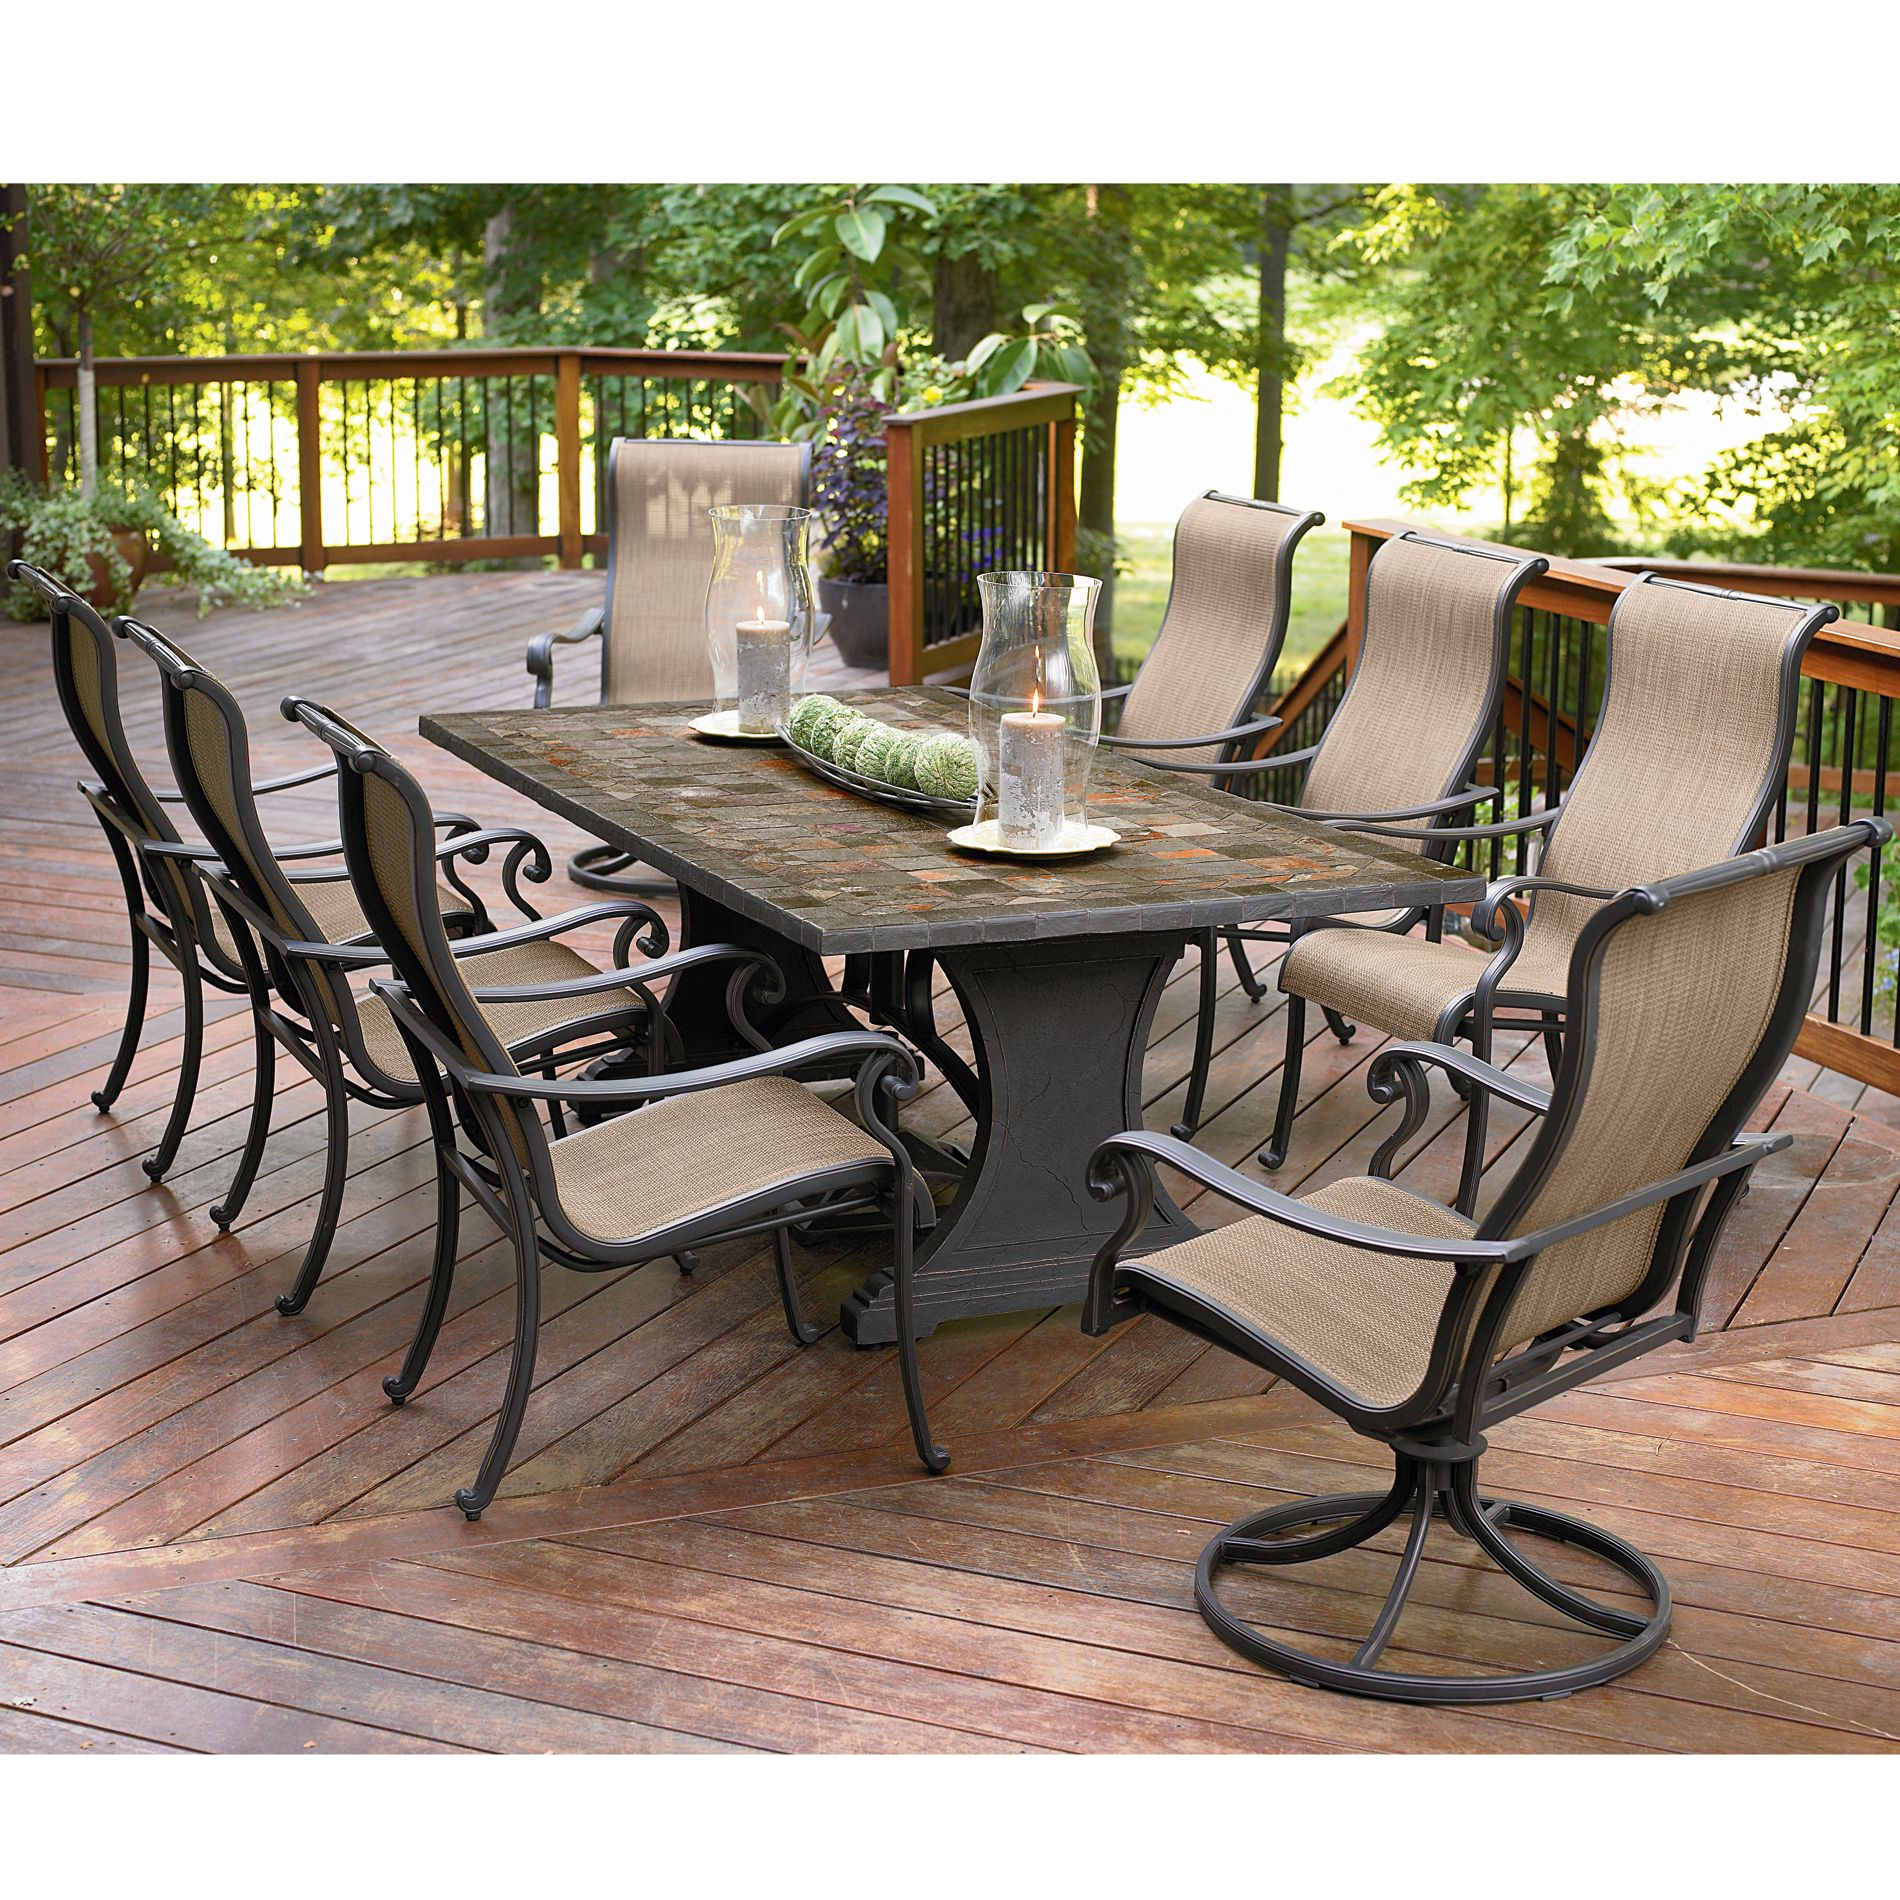 patio furniture dining sets photo - 2